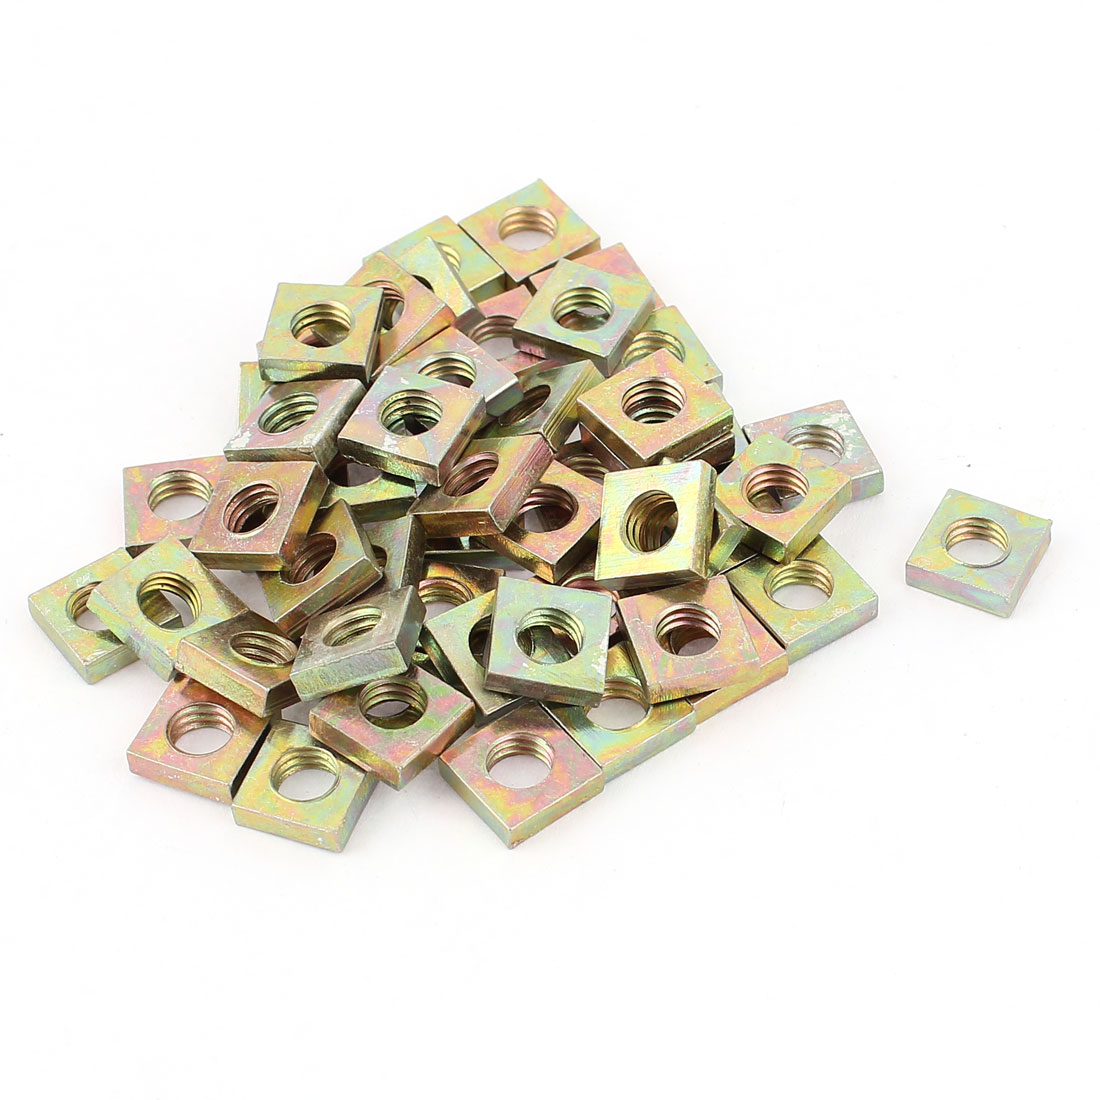 M6x10x3mm Zinc Plated Square Machine Screw Nuts Brass Tone 50Pcs